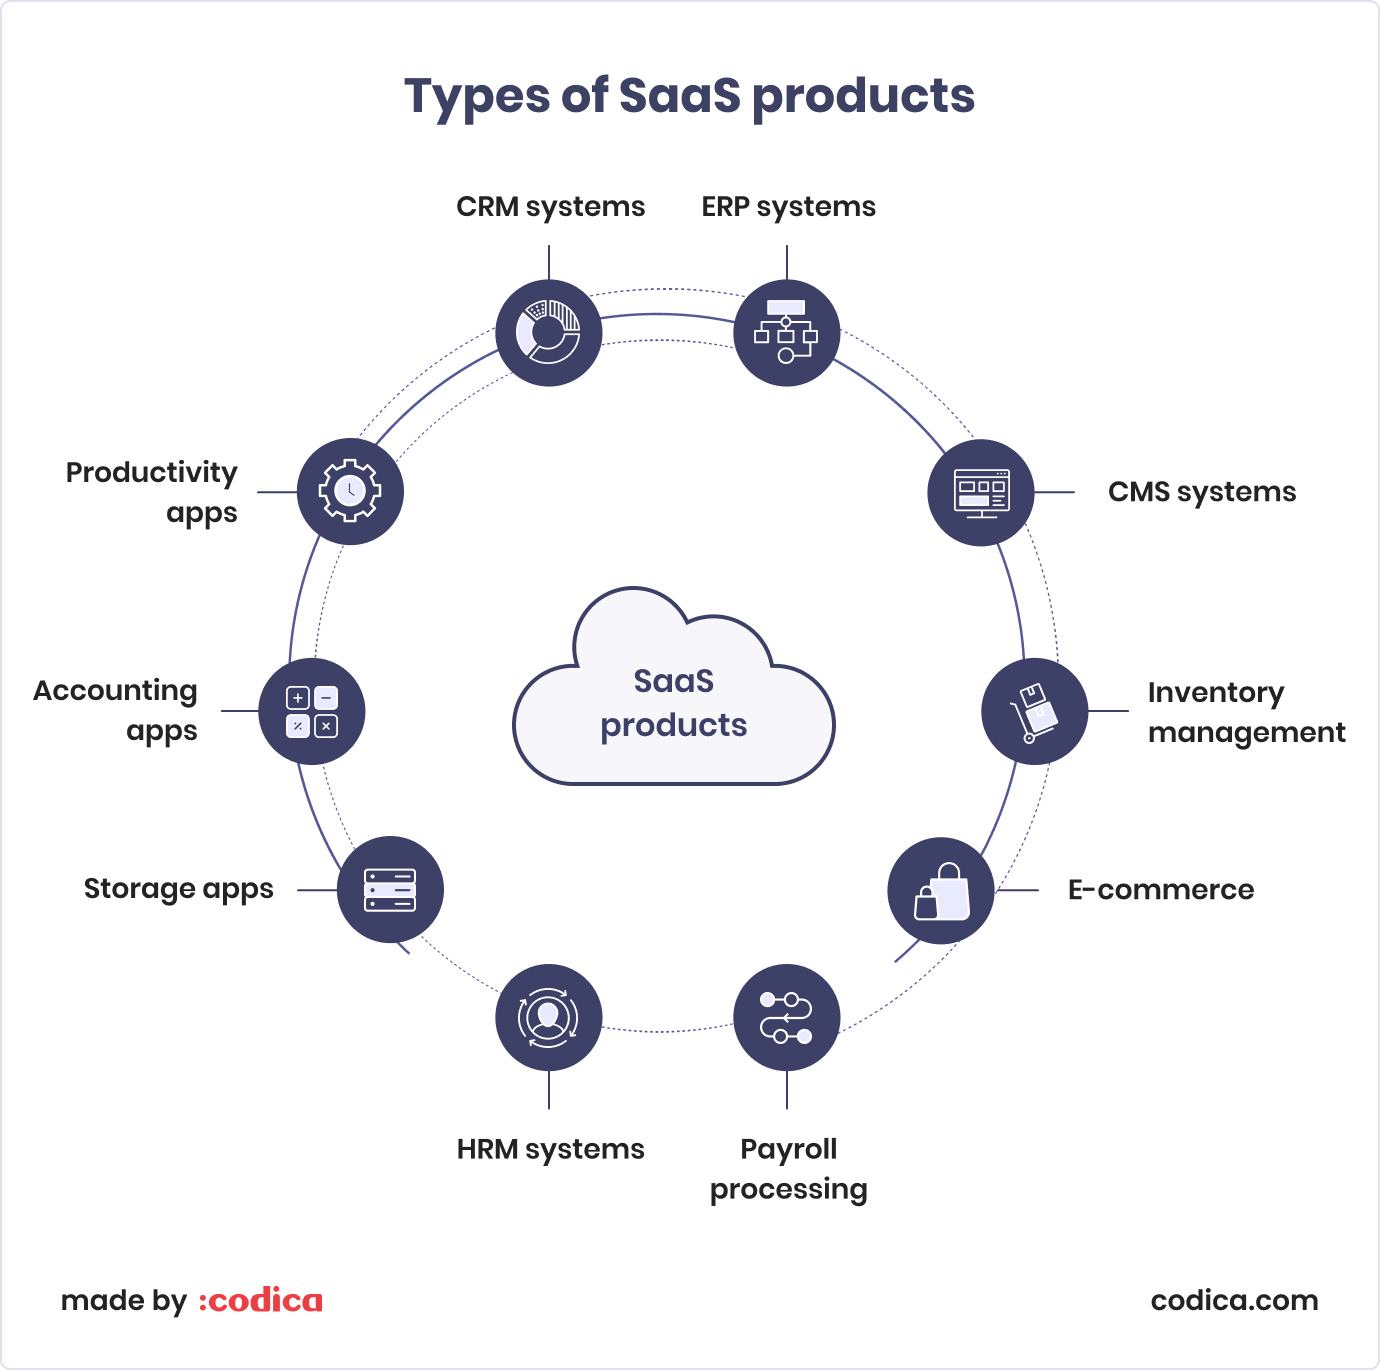 10 types of SaaS products and solutions